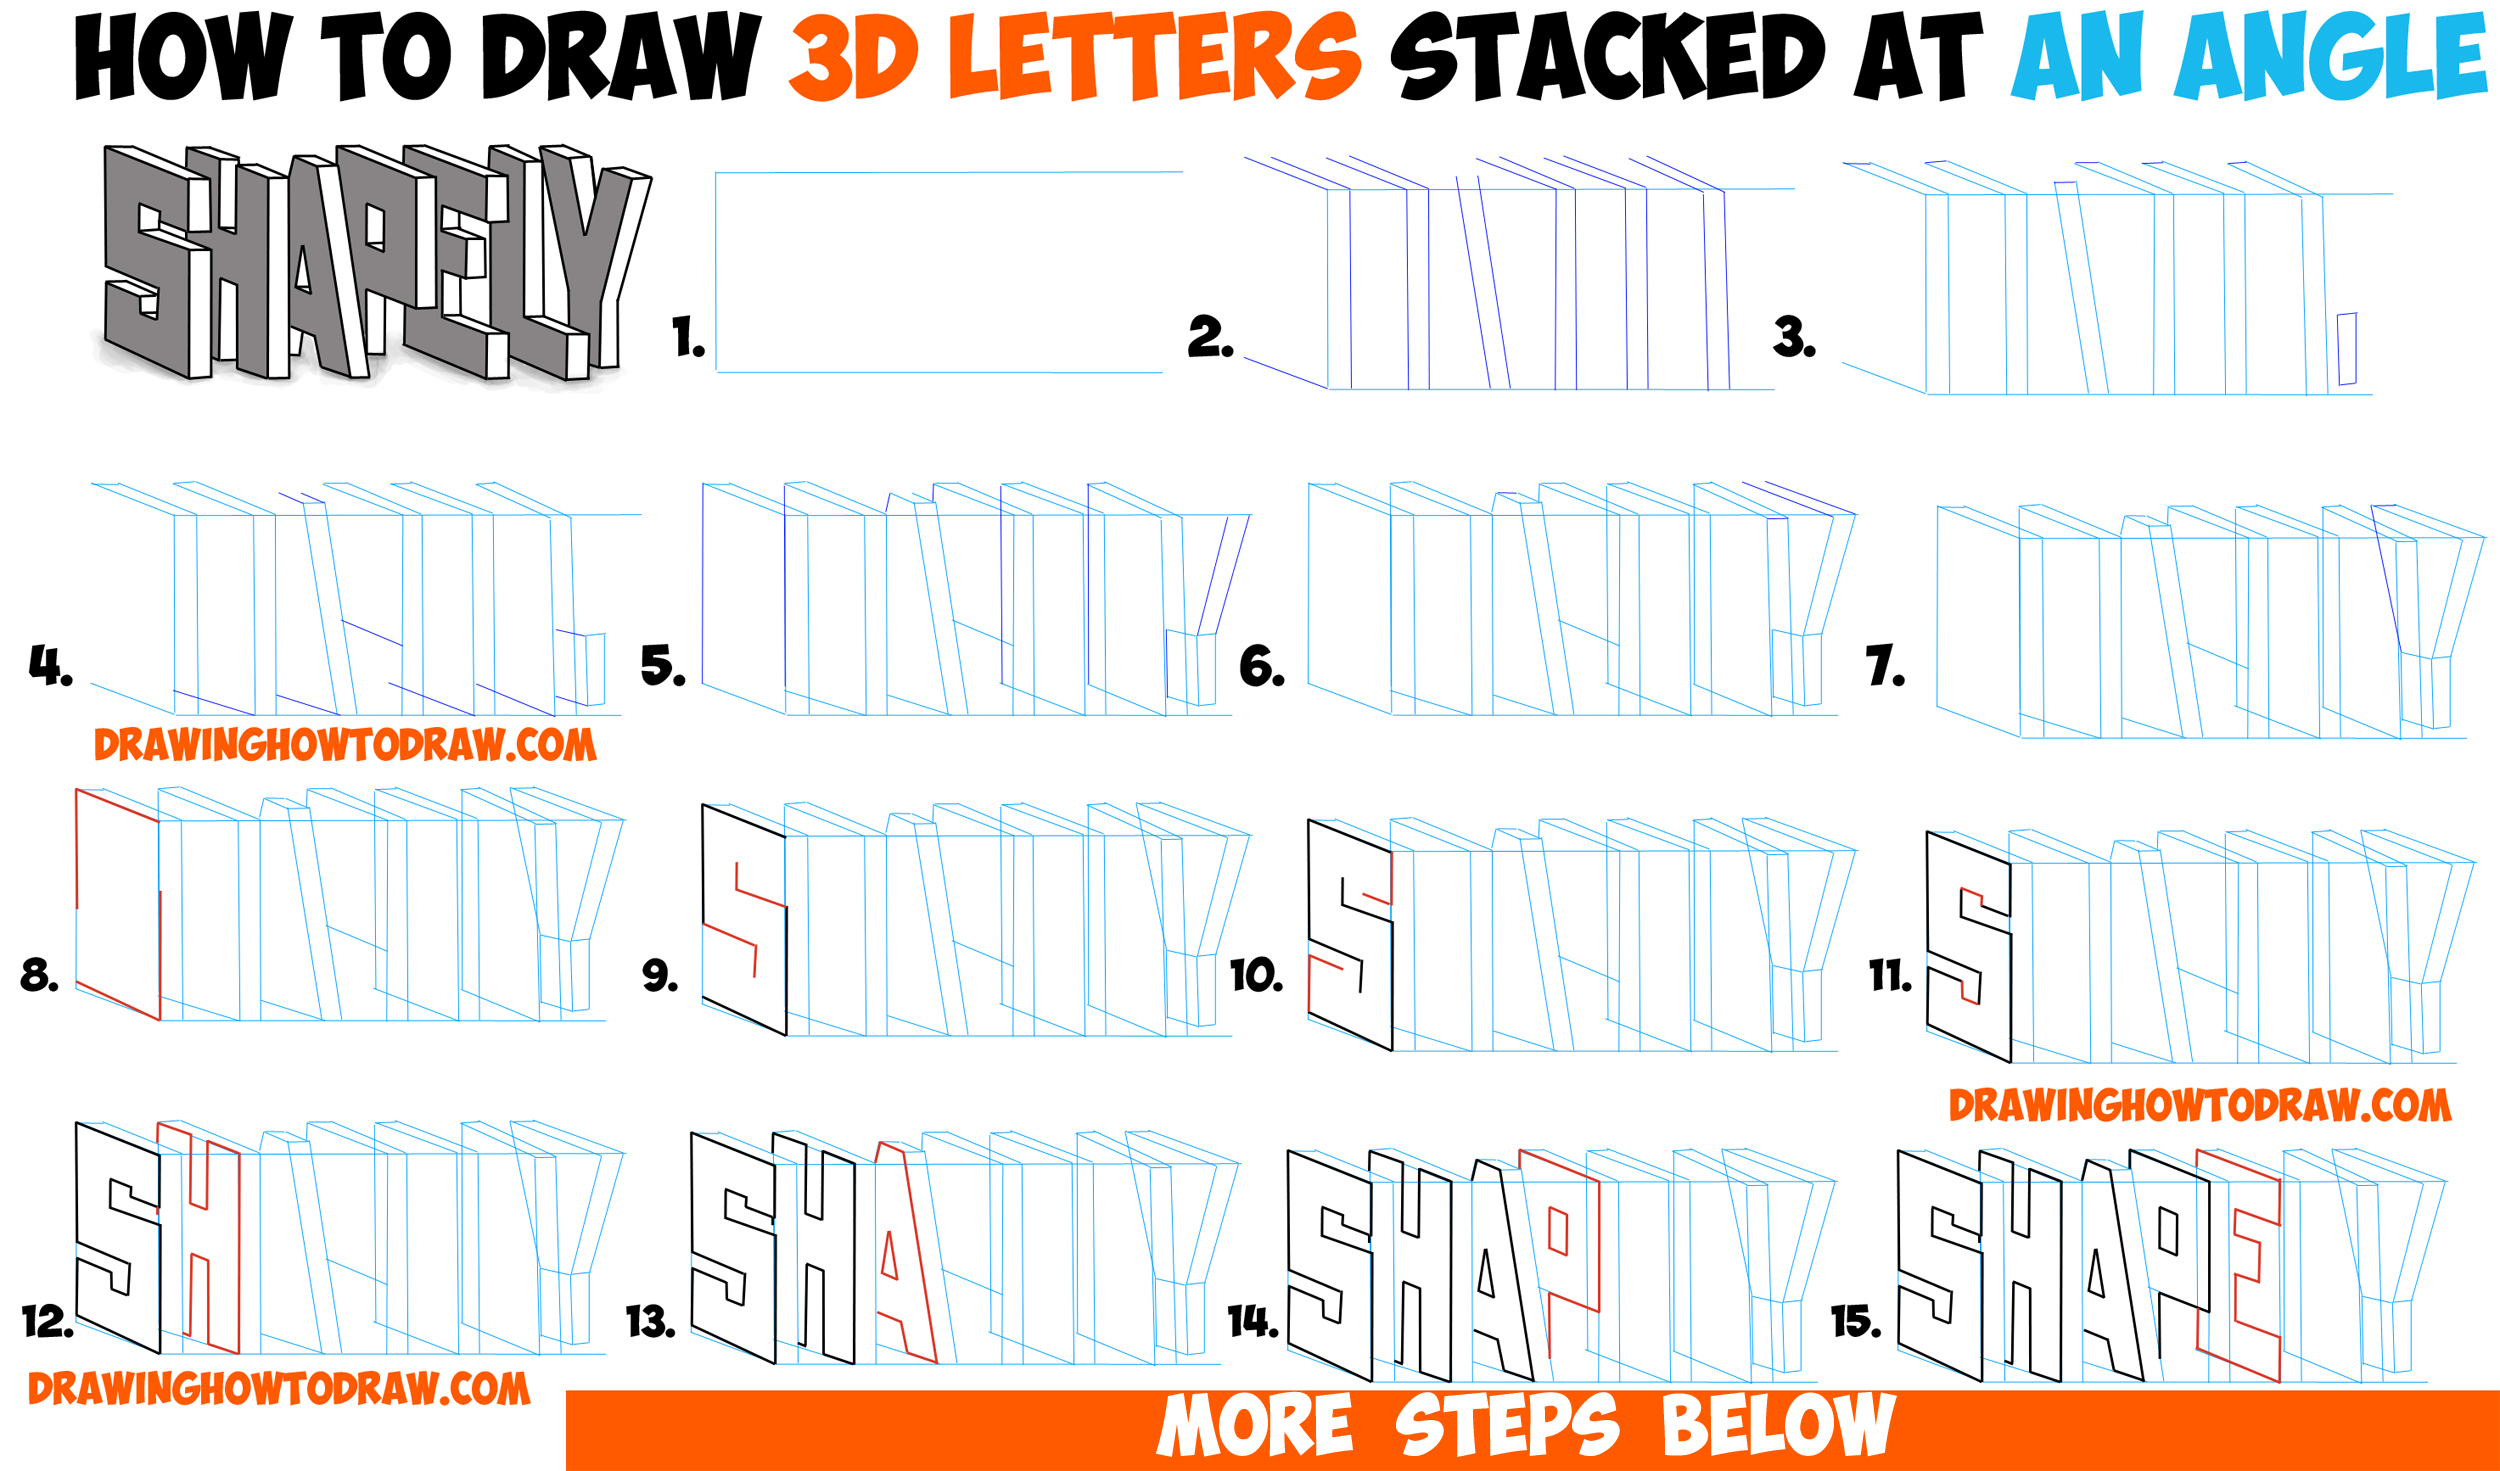 how to draw 3d letters stacked and at an angle easy step by step